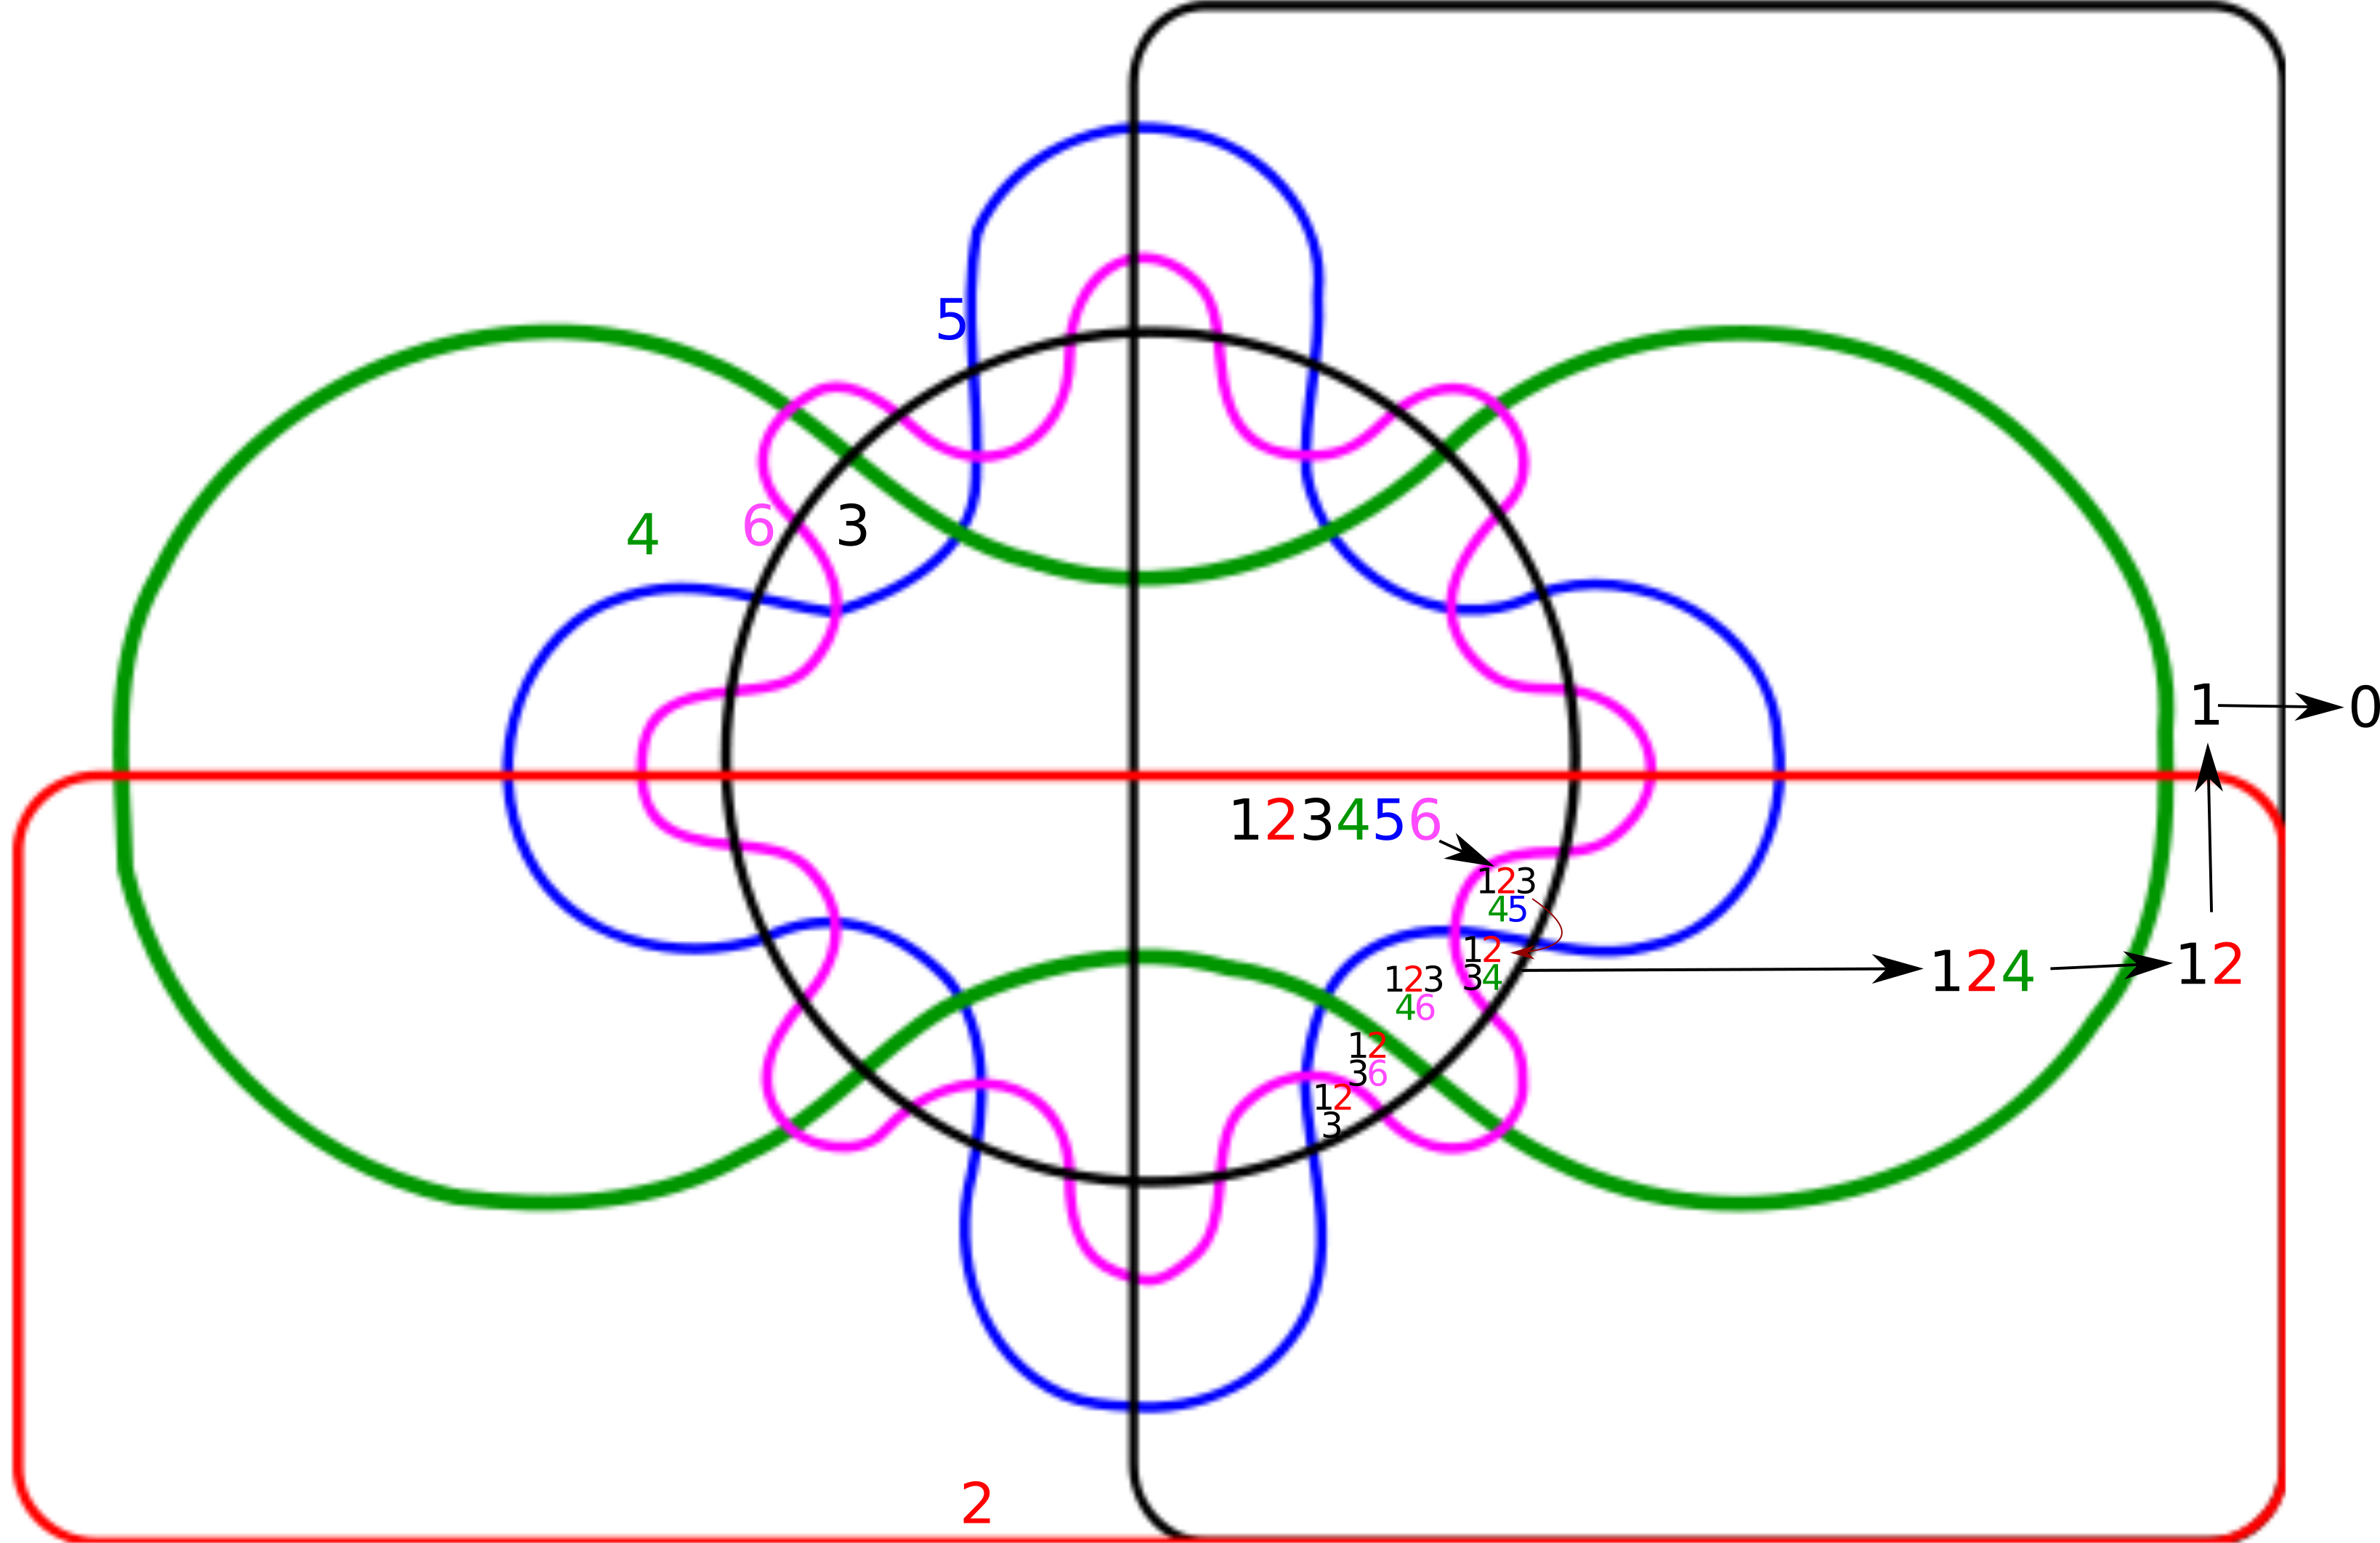 Error lengthcutedge 1 is not true issue 36 js229 i tried the path indicated in the image and successfully got a 6 set venn diagram i followed the same procedure for a 7 set and managed to make it work pooptronica Images